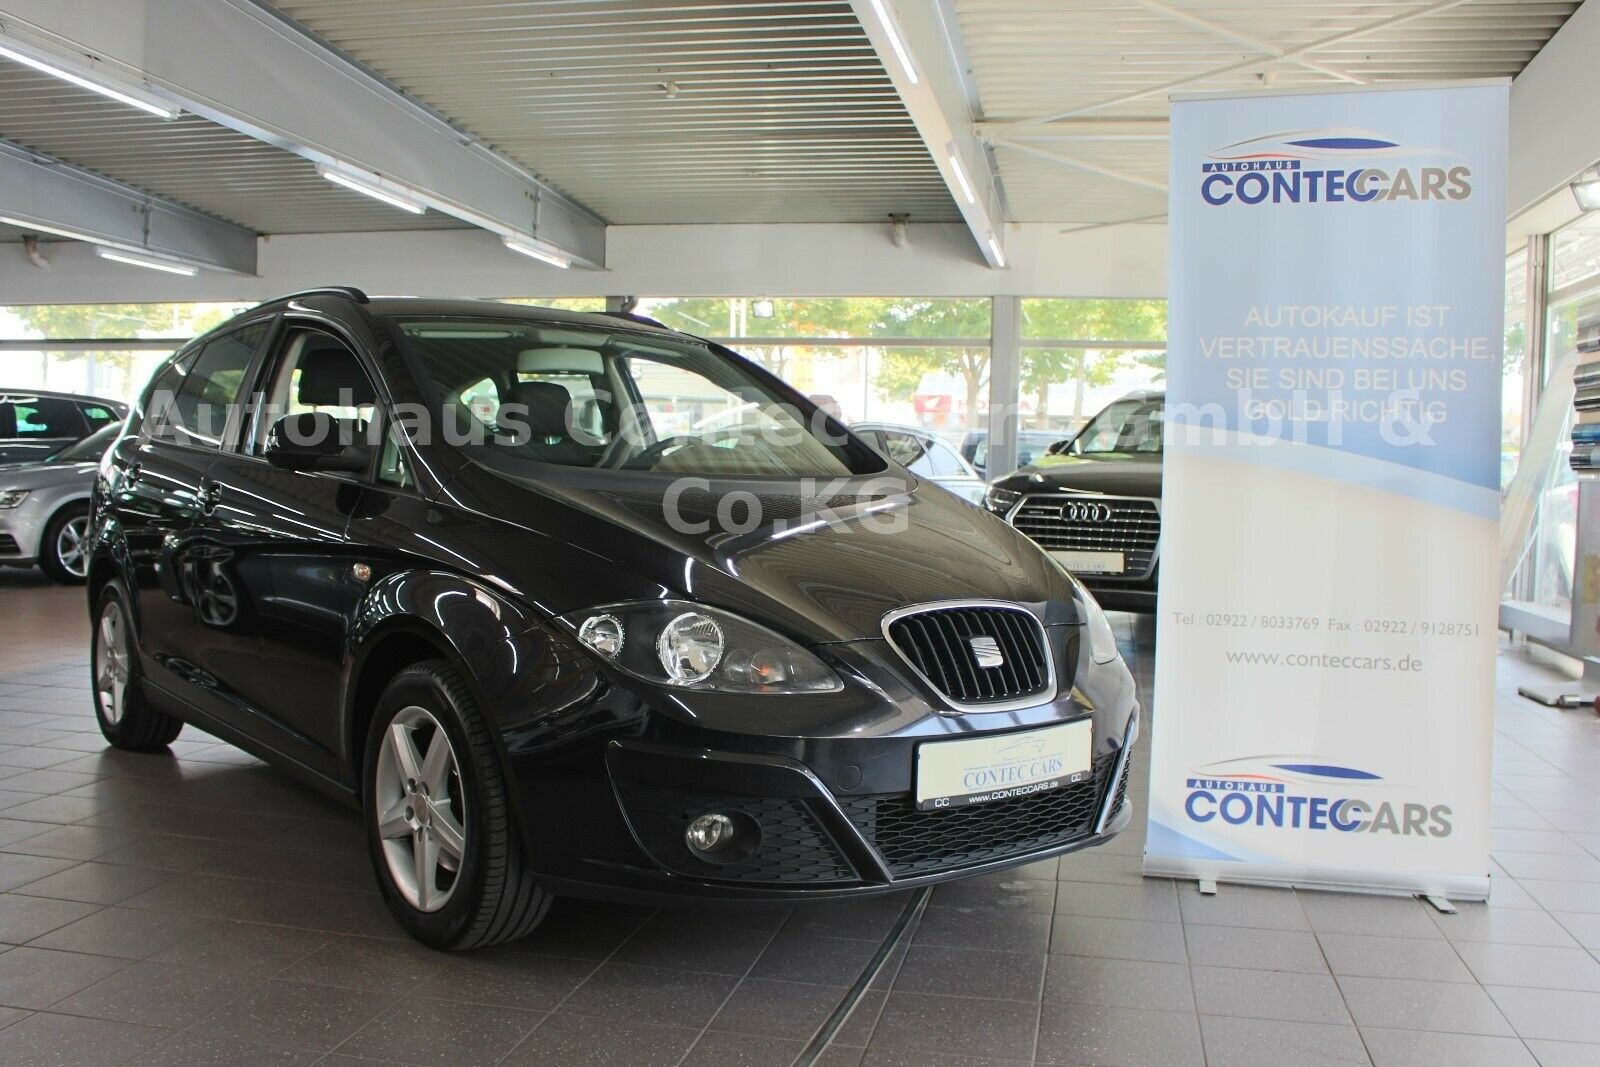 SEAT Altea XL 1.6 TDI Ecomotive Reference